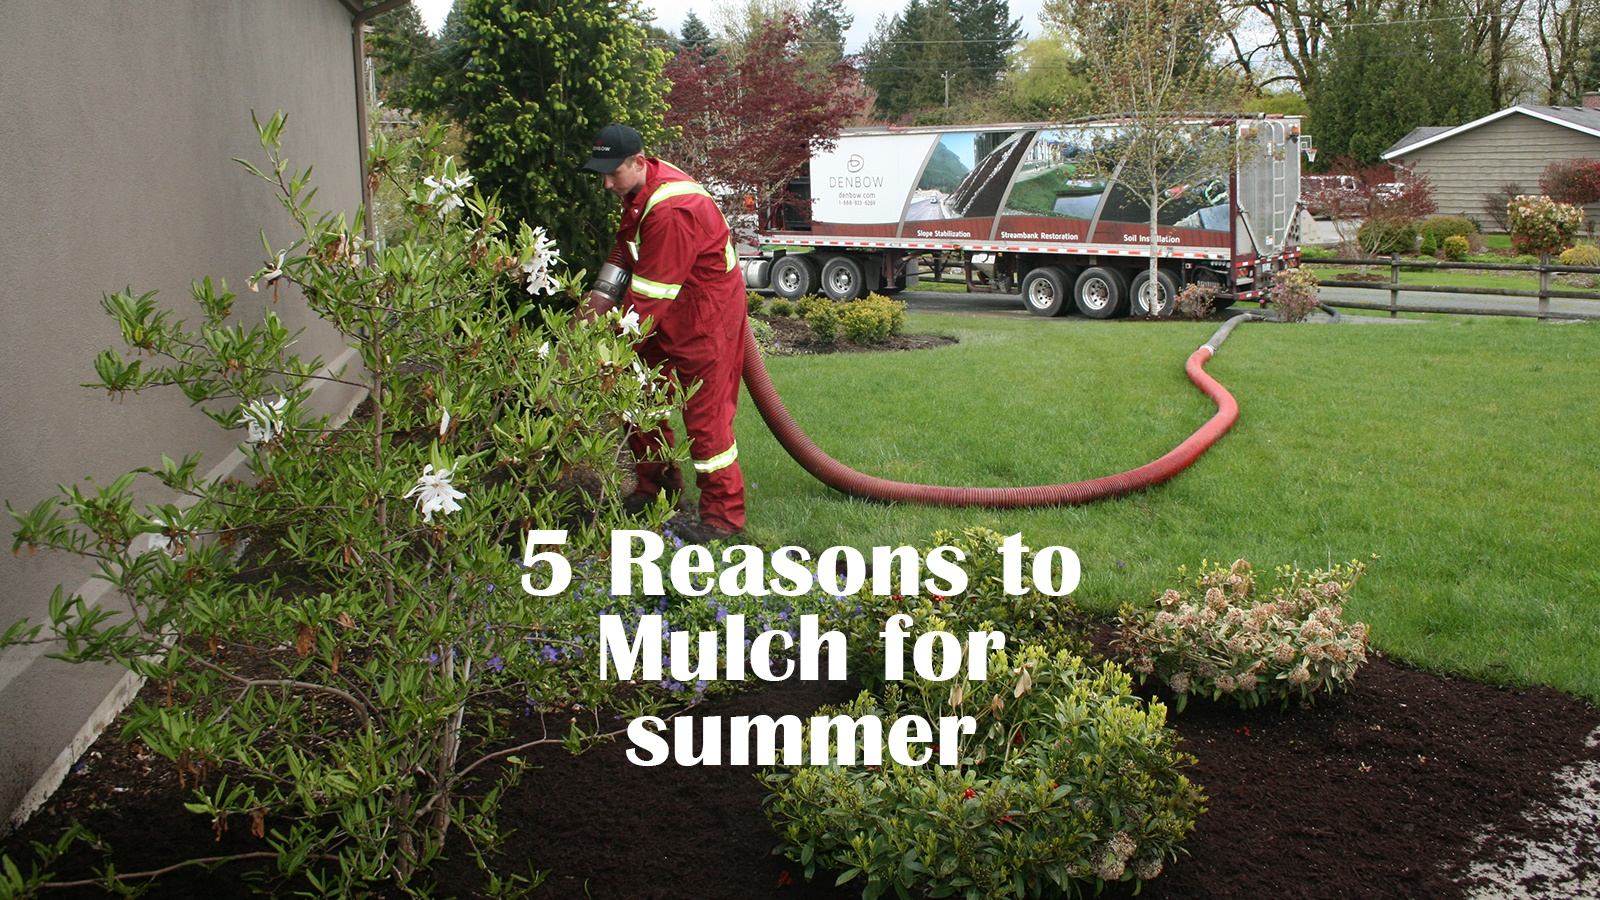 5 reasons to mulch for summer